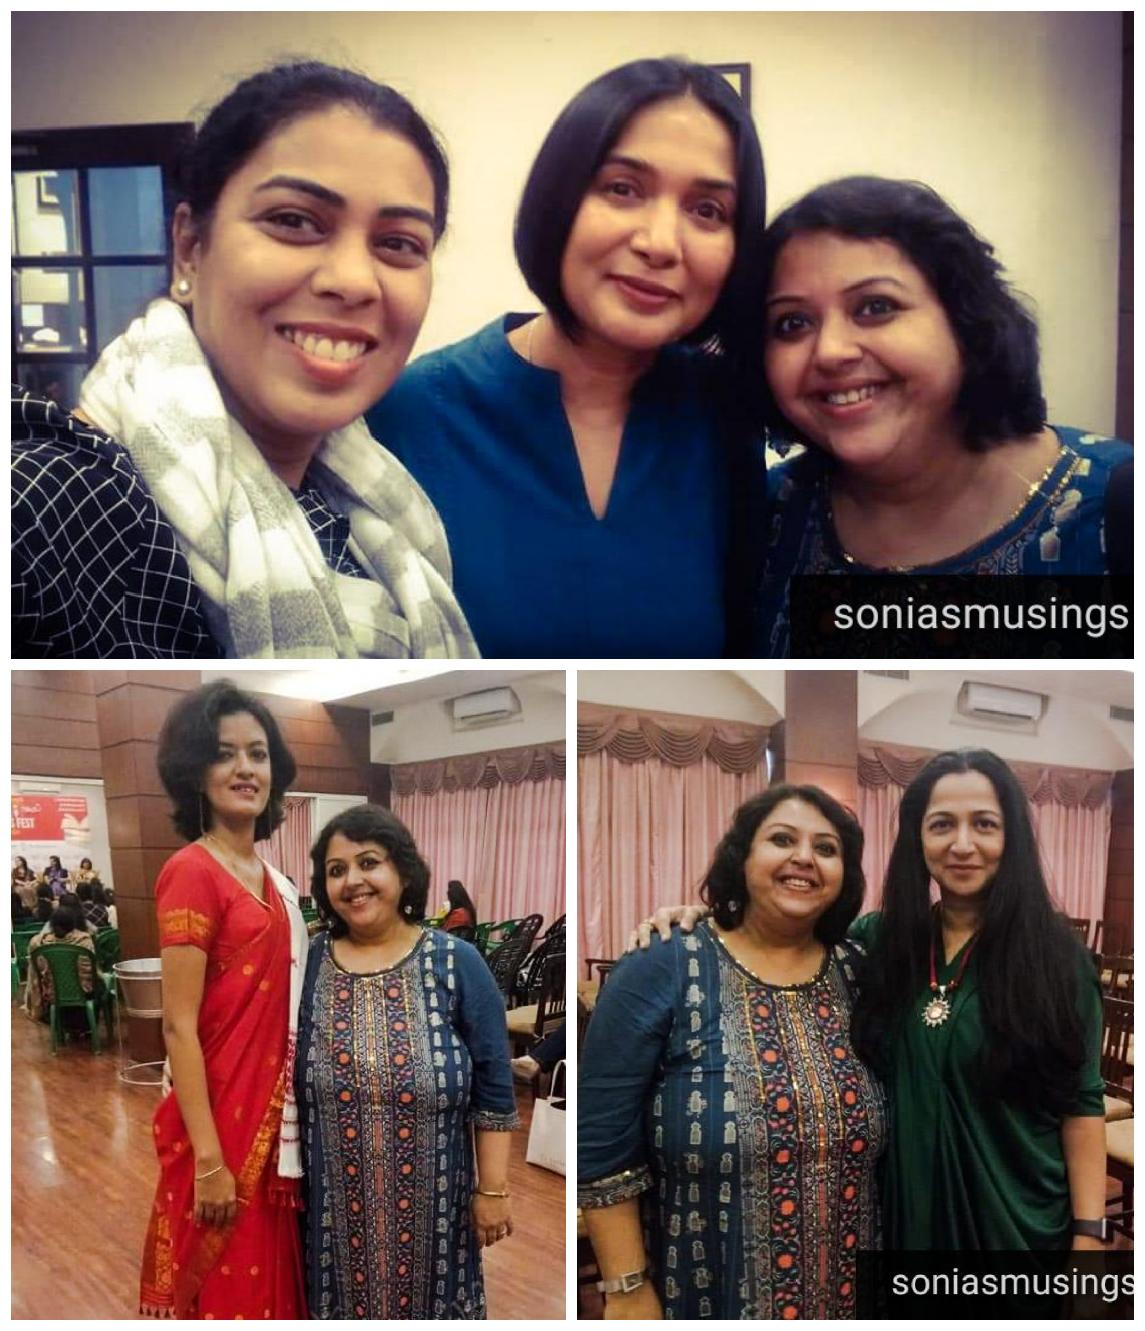 Meeting Anupriya, Damyanti, Paromita and Kiran Manral